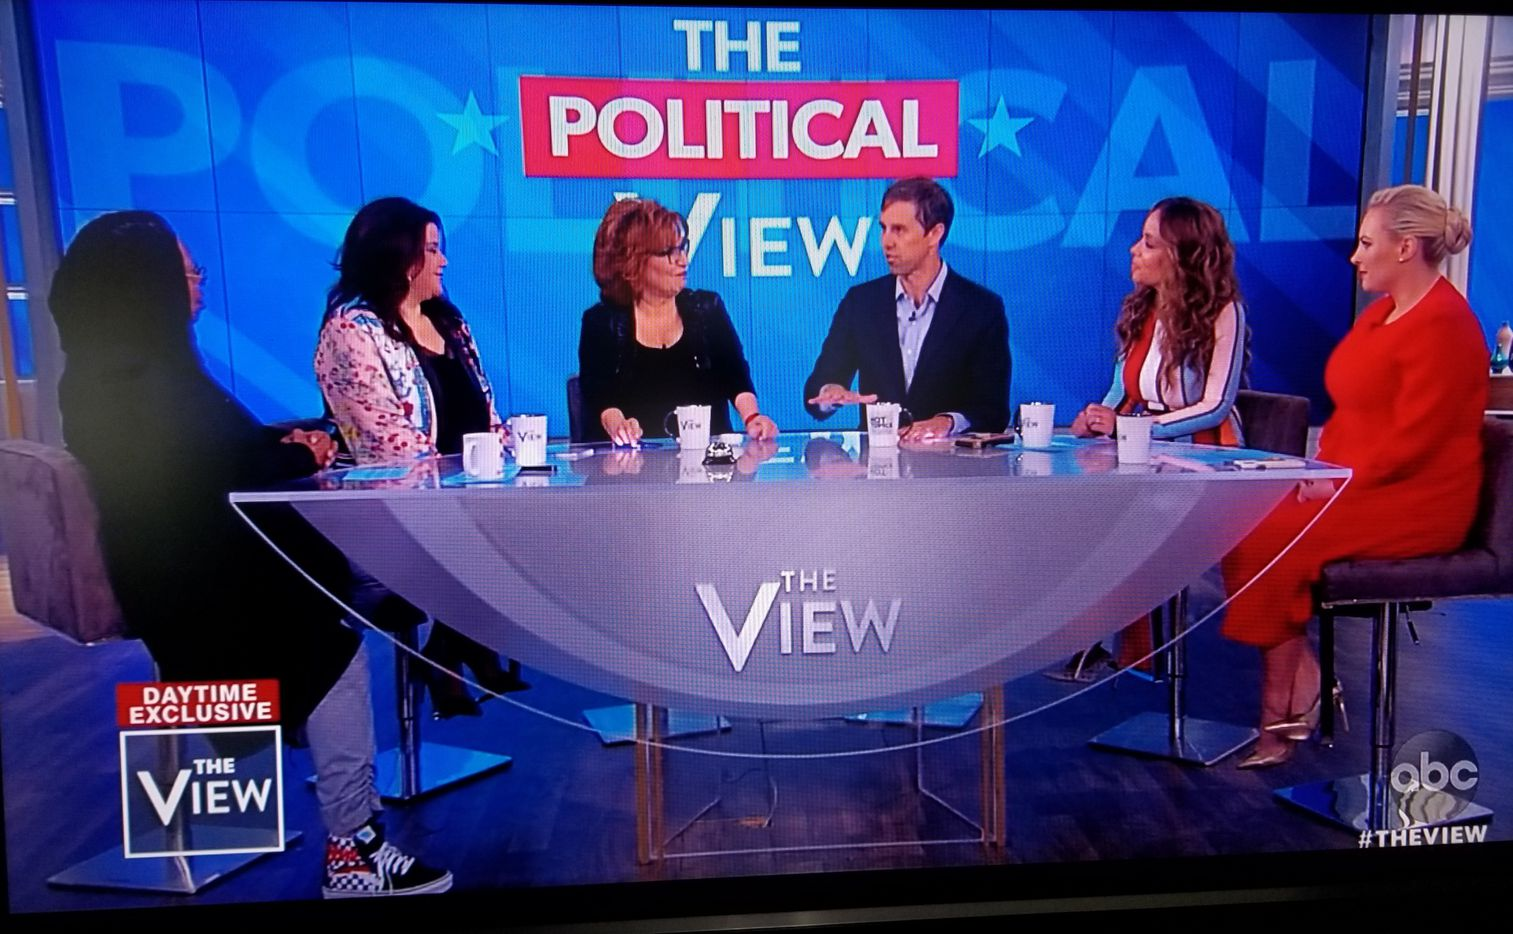 Screen grab from Beto O'Rourke's appearance May 14, 2019, on ABC's The View. Left to right: Whoopi Goldberg, Ana Navarro, Joy Behar, O'Rourke, Sunny Hostin and Meghan McCain.